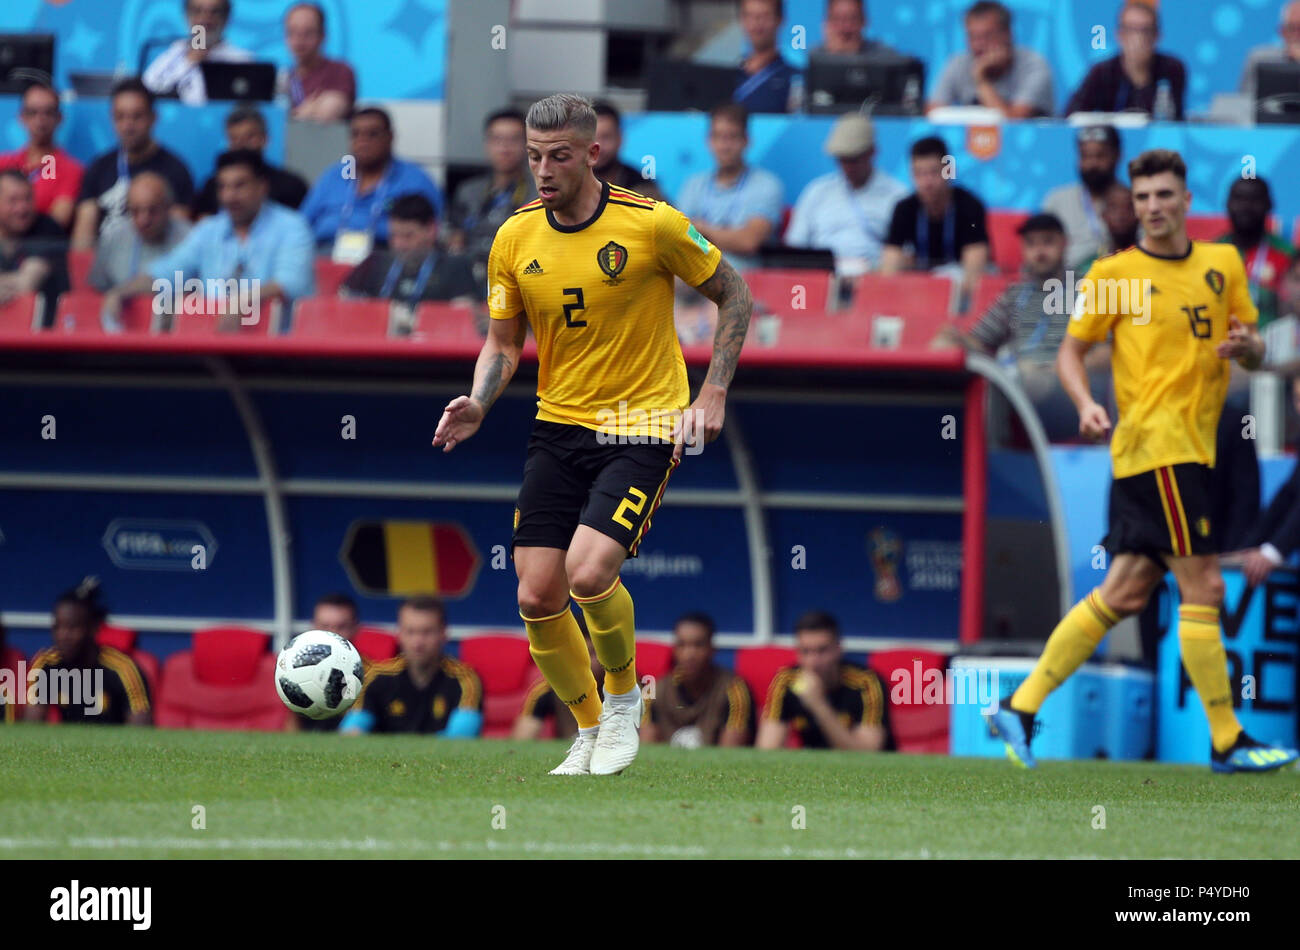 Moscow, Russia. 23rd June 2018. Toby Alderweireld in action during ...